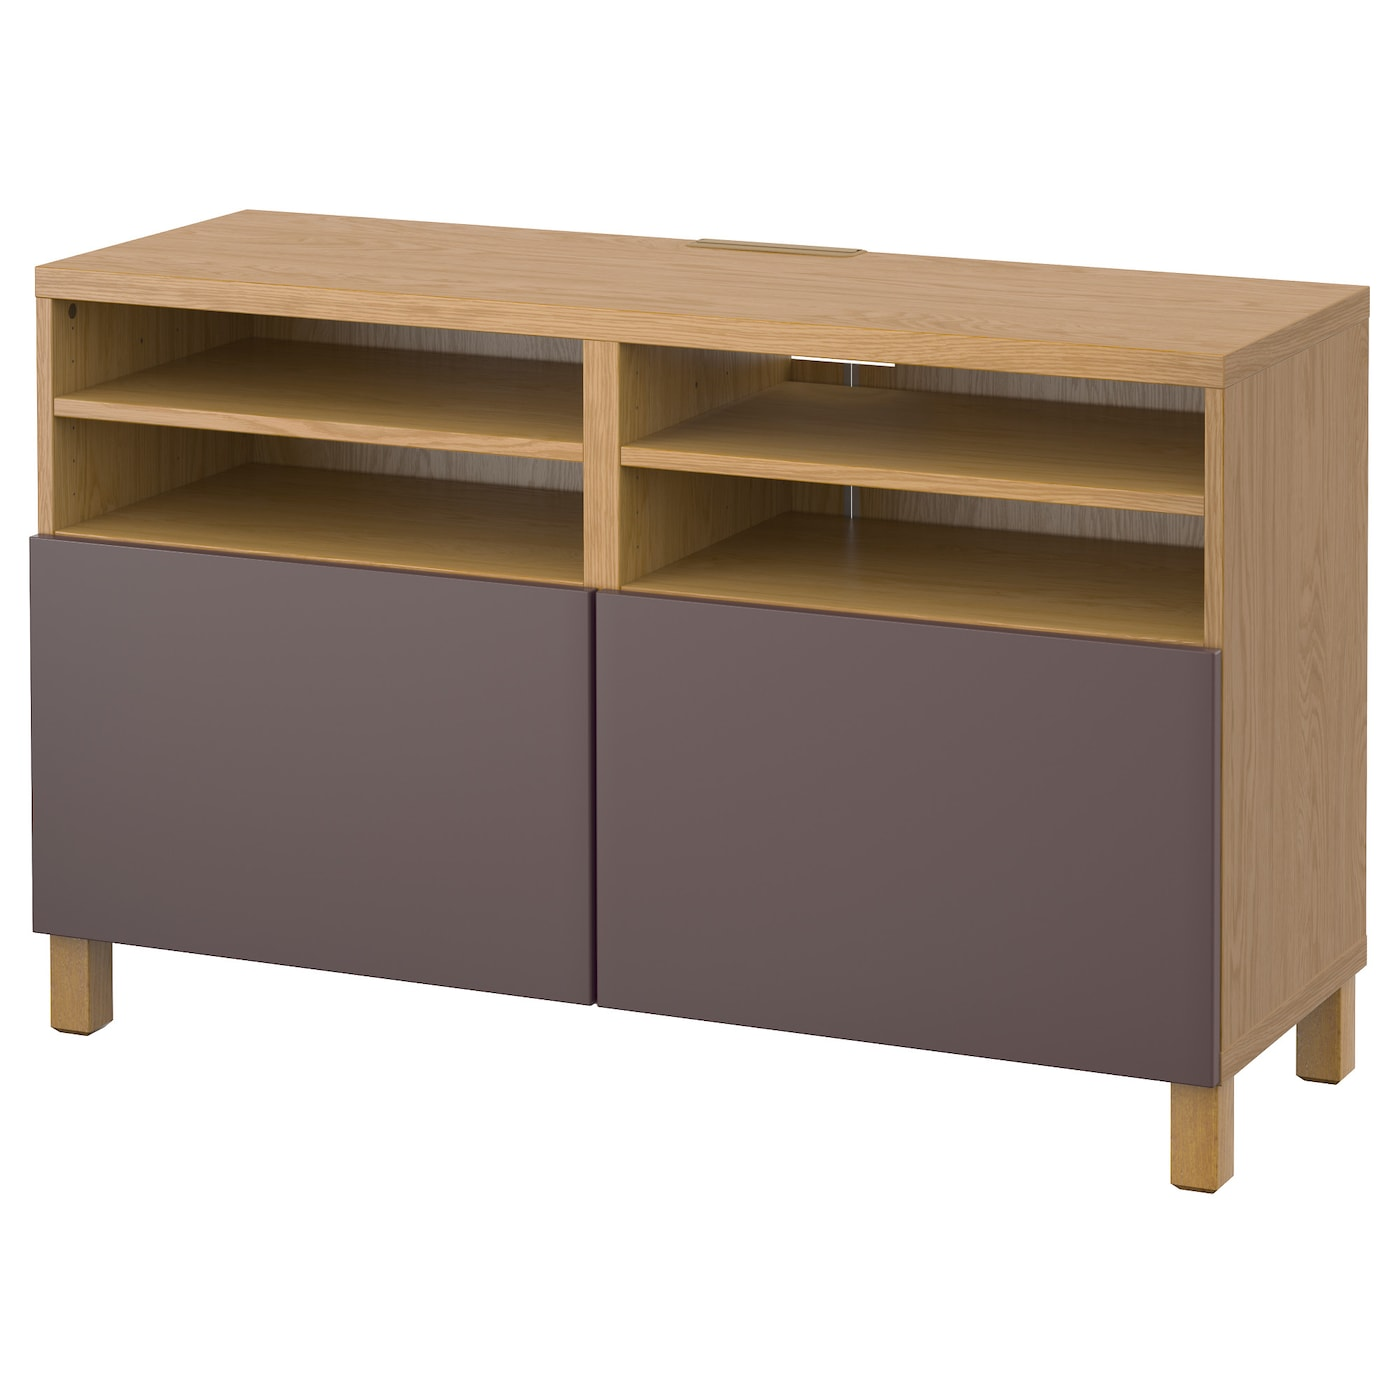 Best tv bench with doors oak effect valviken dark brown Storage bench ikea